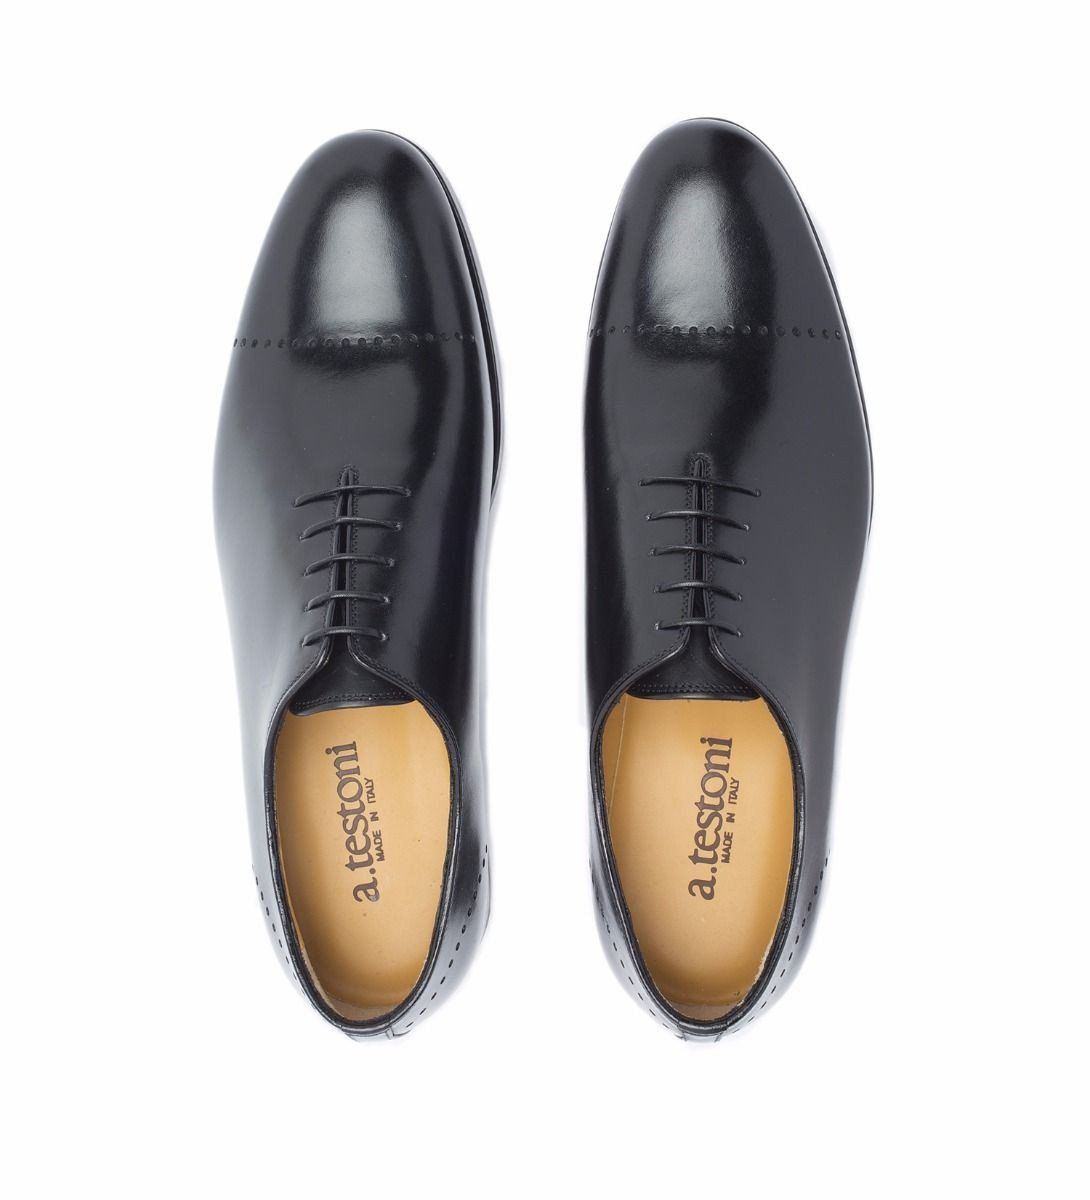 LACE-UP LEATHER SHOE,SHOES,A.TESTONI, | GentRow.com